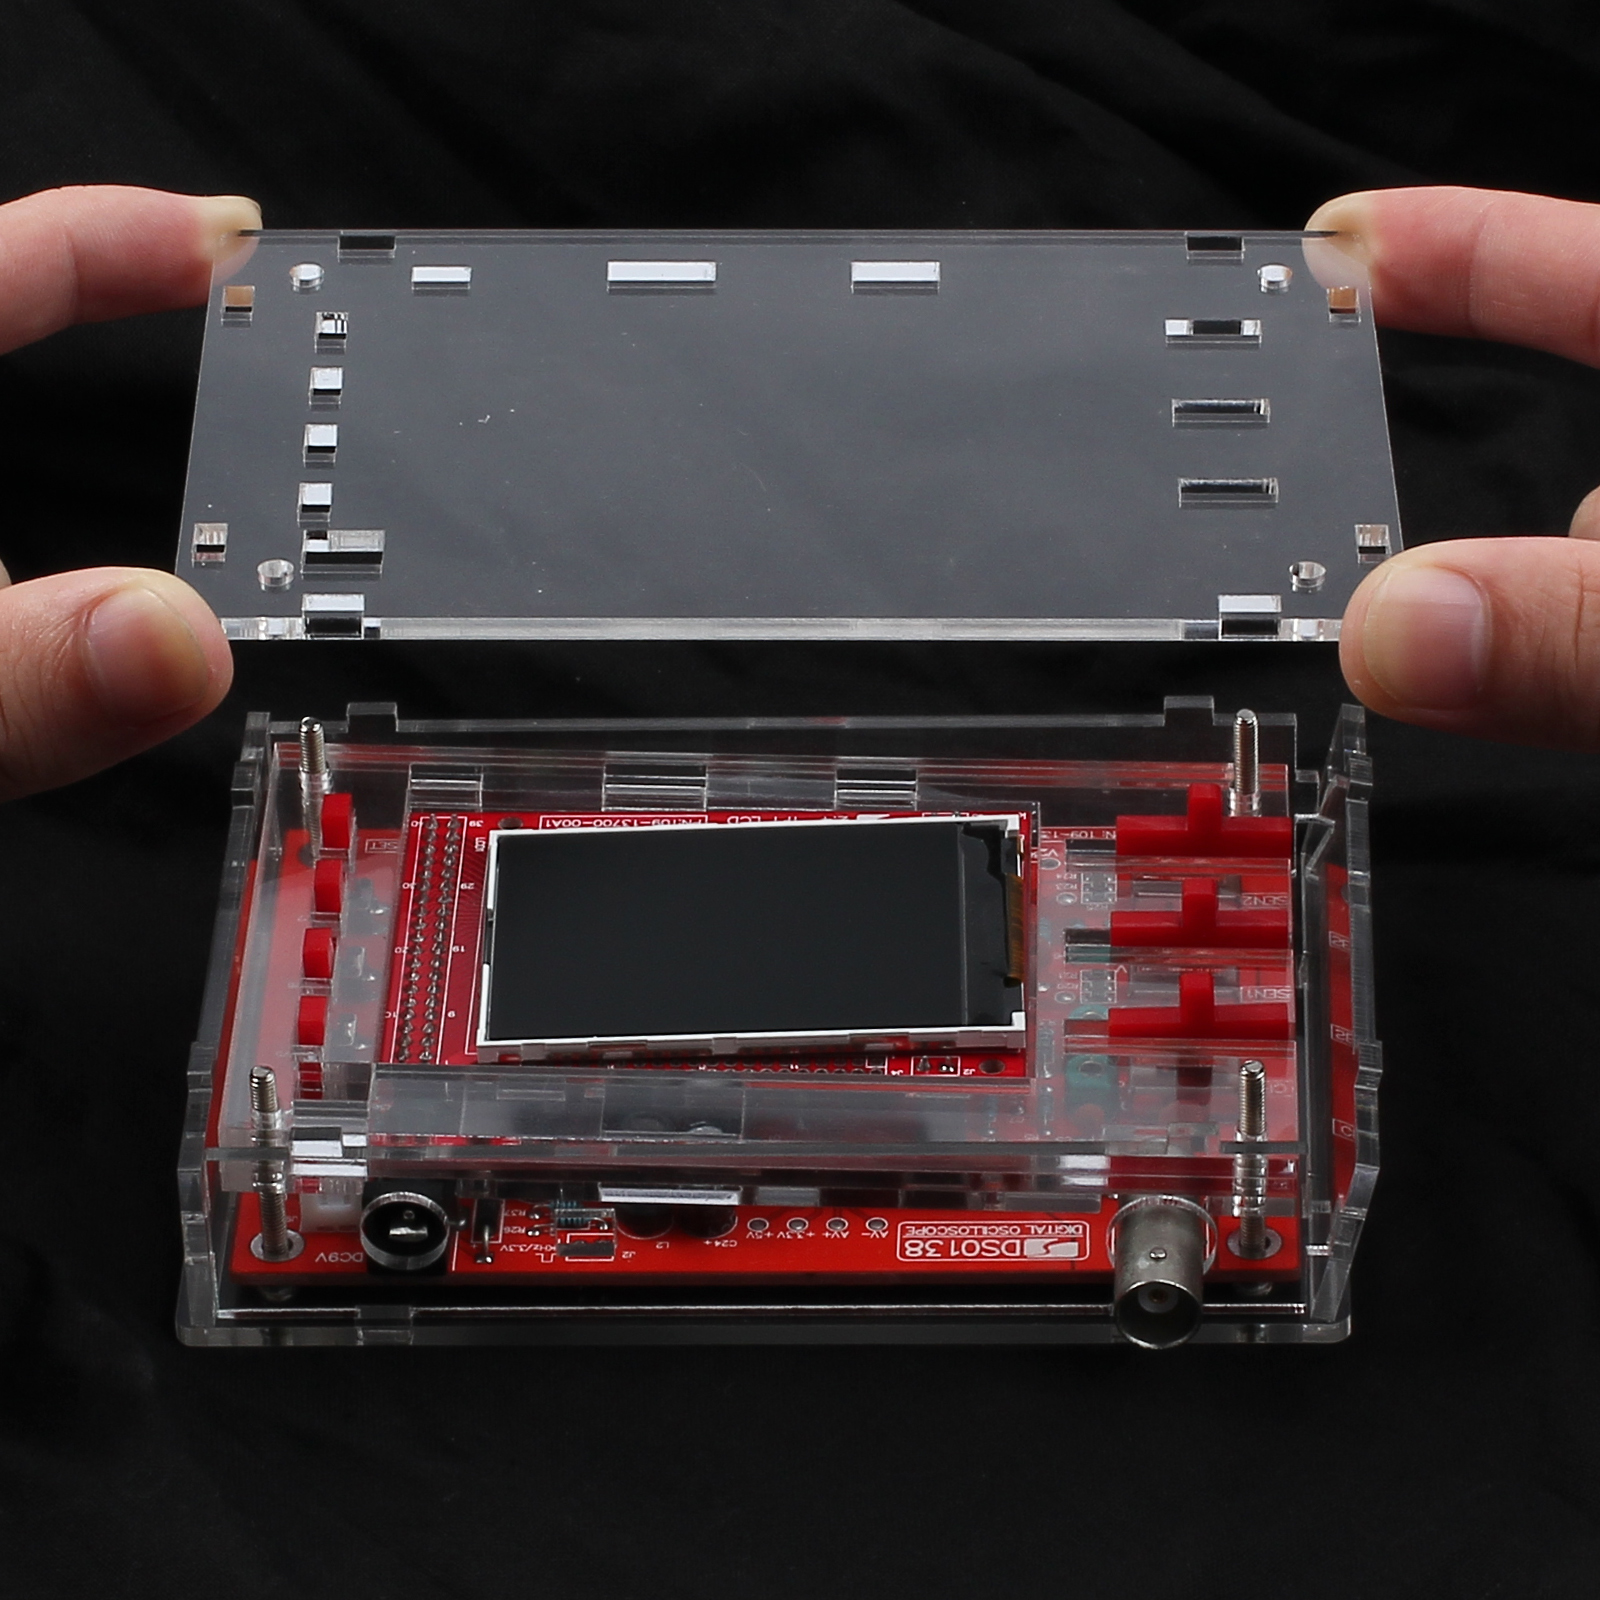 dso138 acrylic case assembly instructions